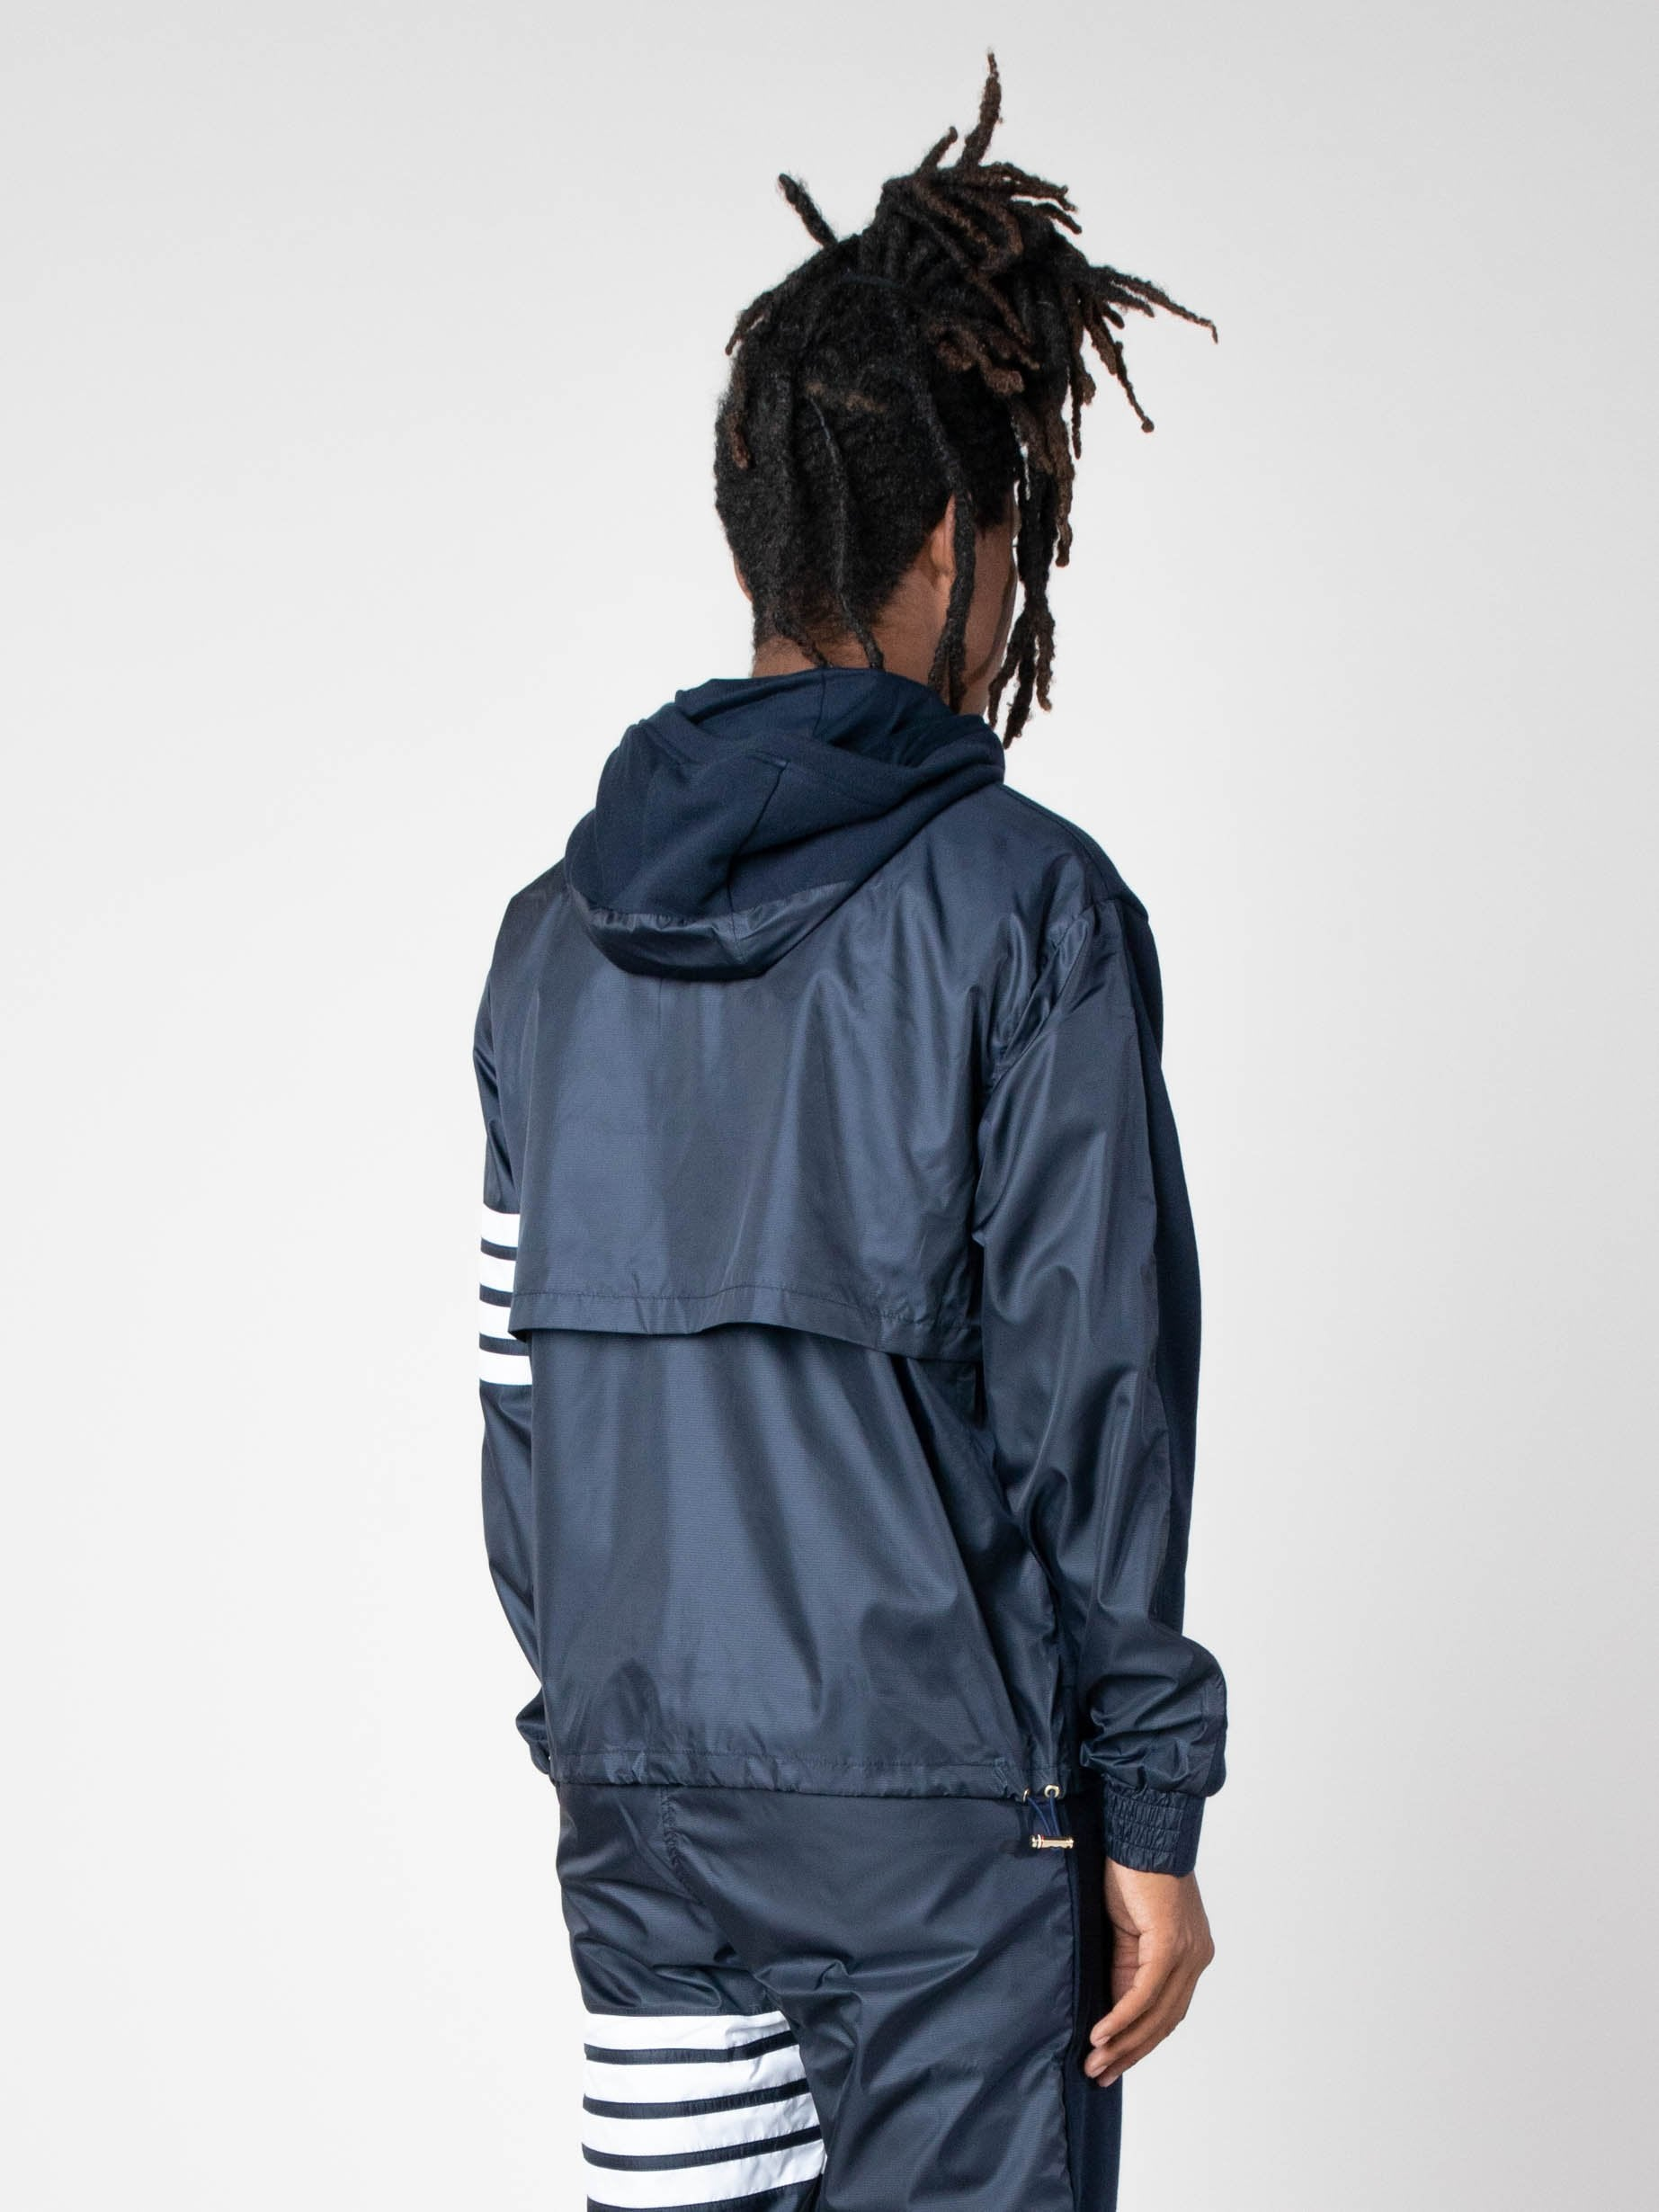 Navy Half And Half Zip Up Hoodie In Ripstop & Classic Loopback Jersey W/ 4 Bar Stripe 5